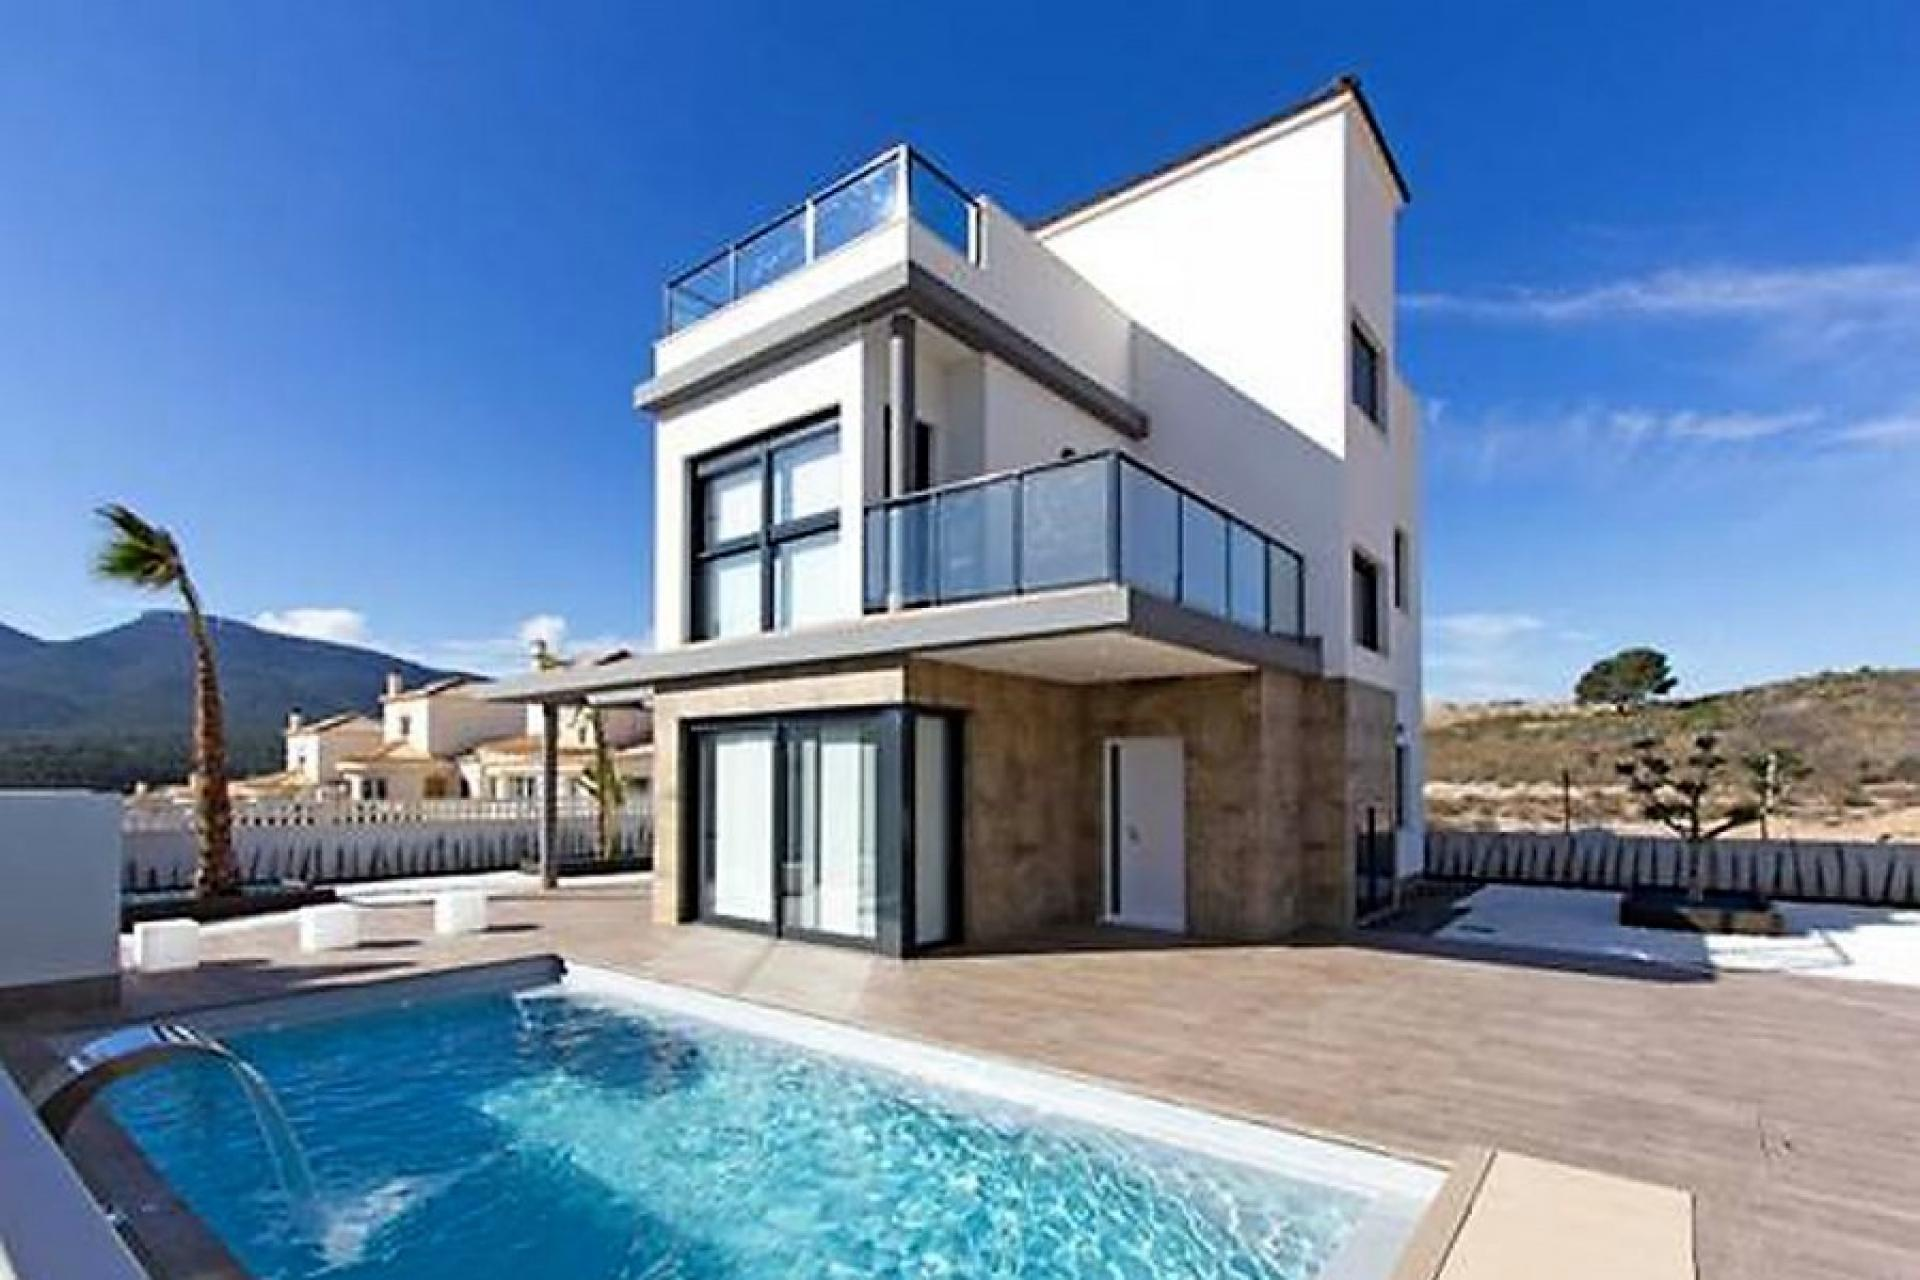 Villa in Castalla (Alicante)